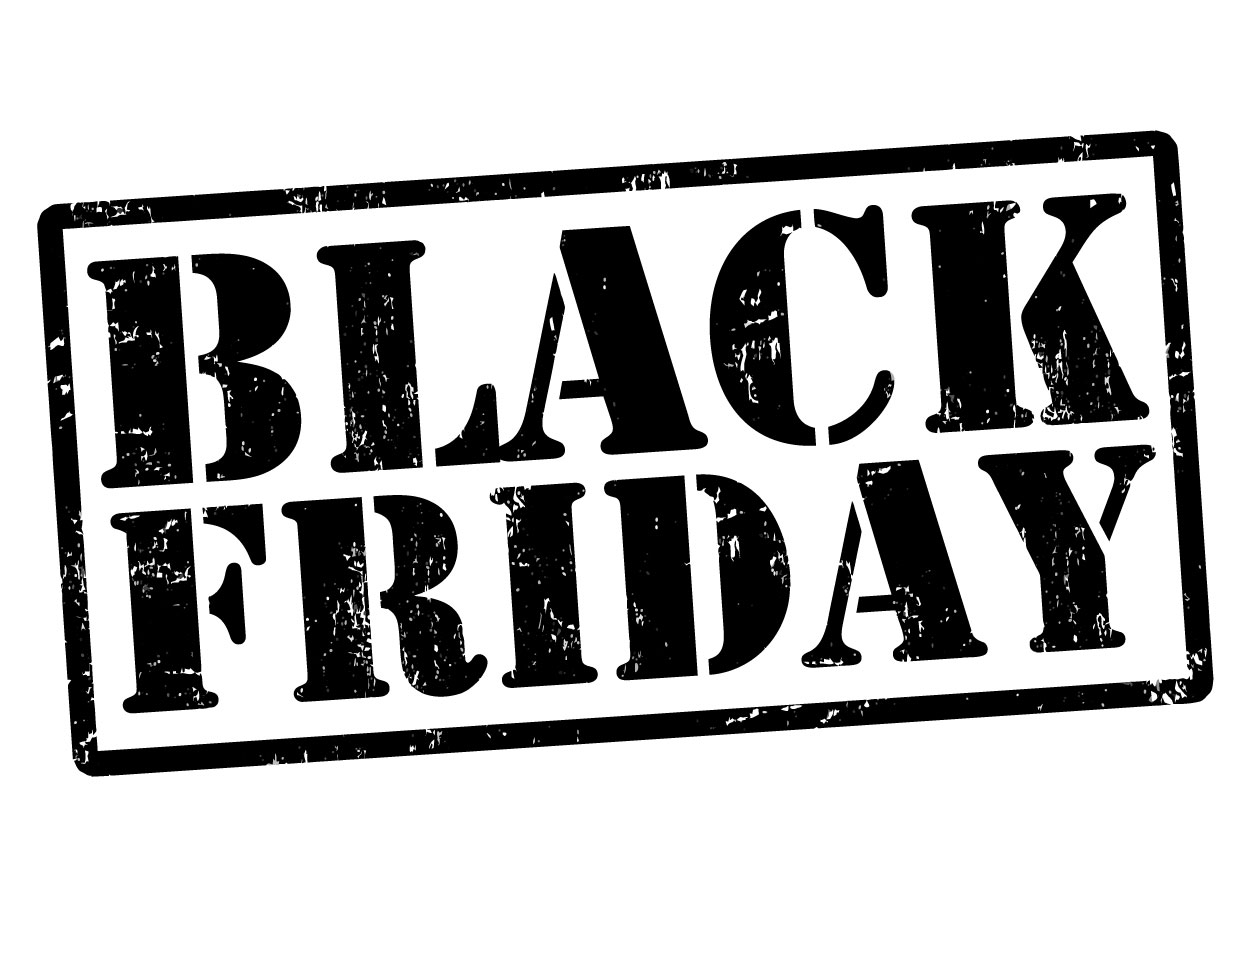 Thanksgiving, Black Friday & American Consumerism